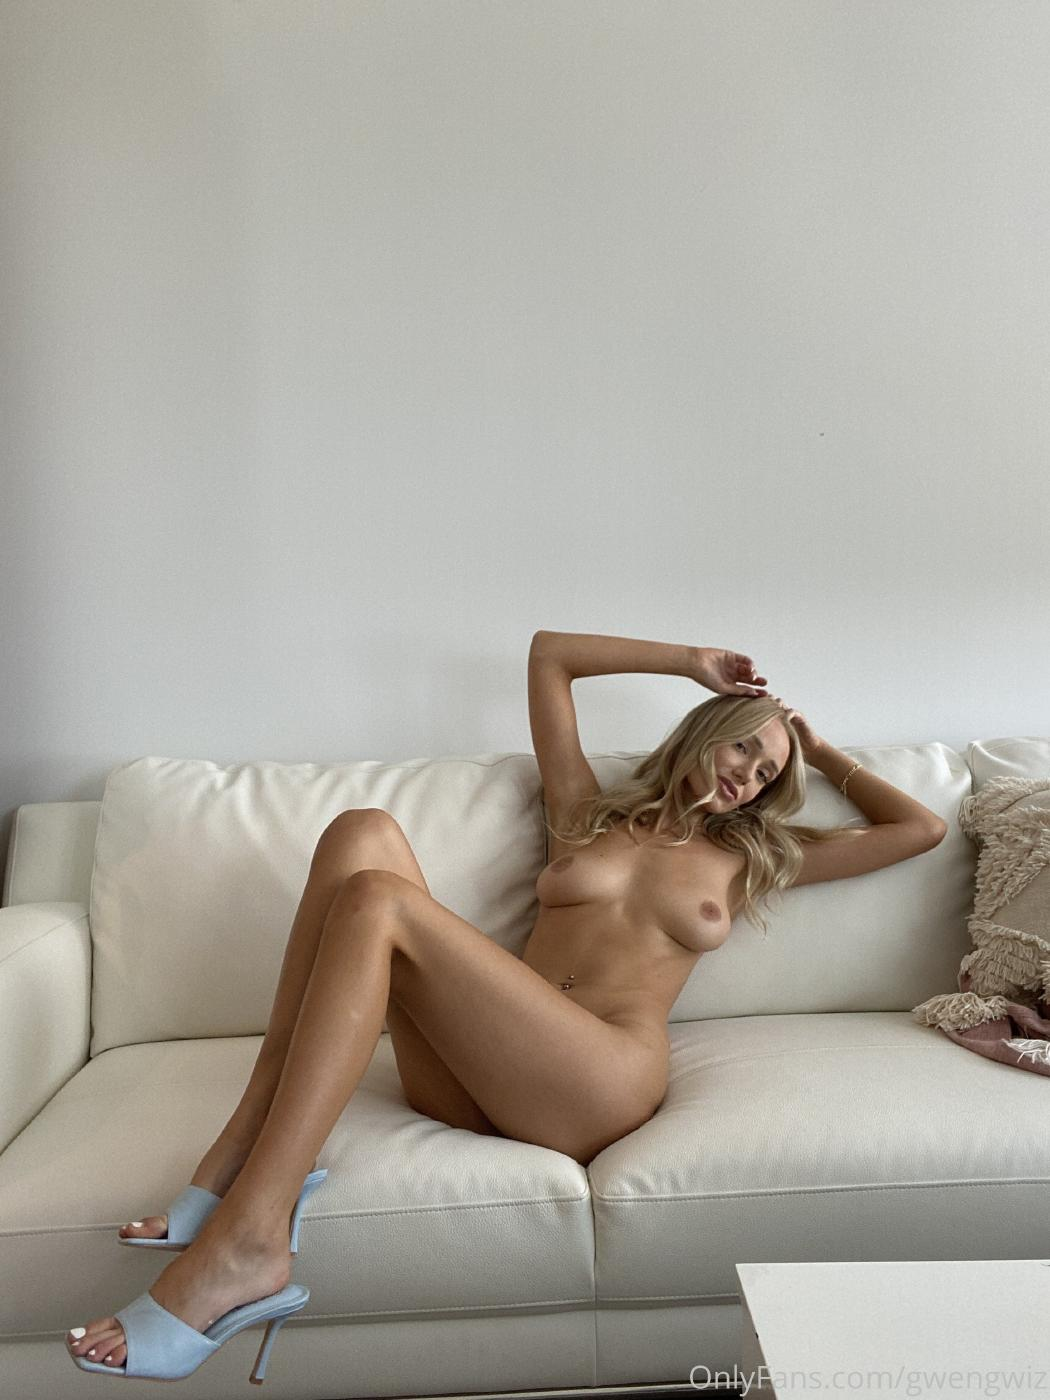 Gwengwiz Nude Onlyfans Collection Leaked 0035